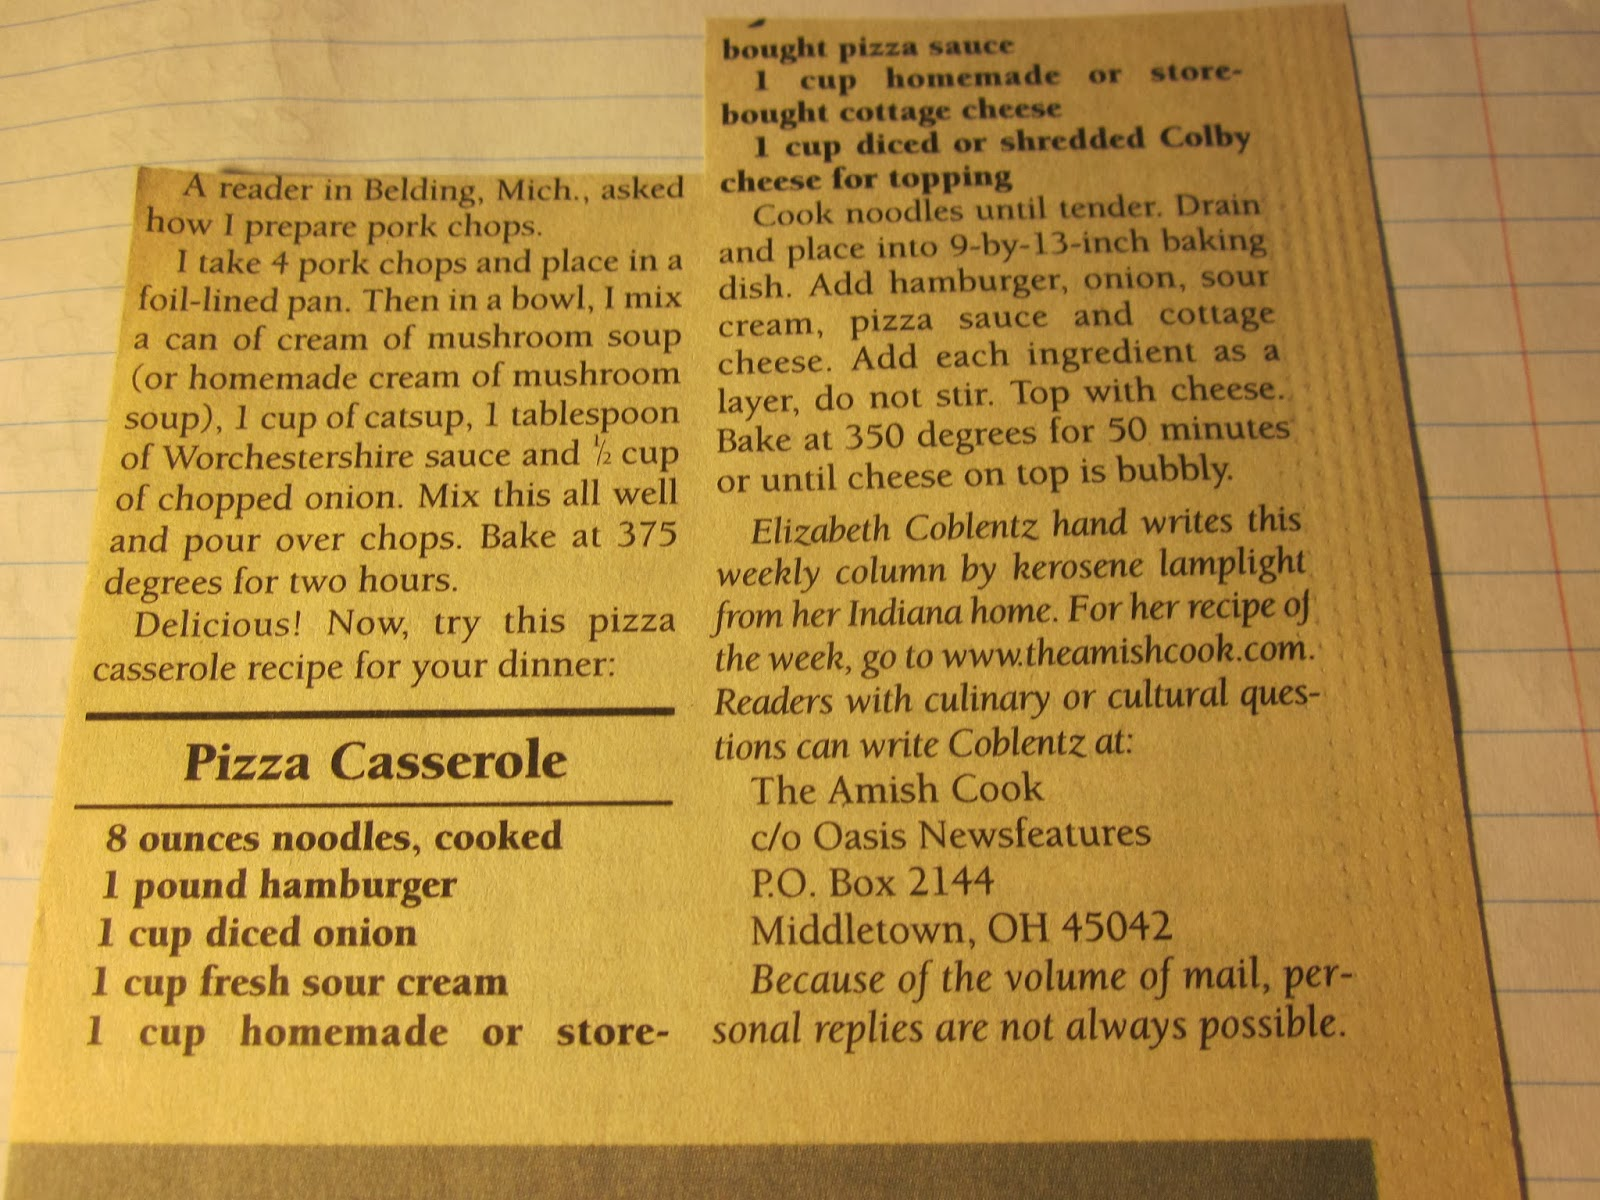 the amish cook's pizza casserole